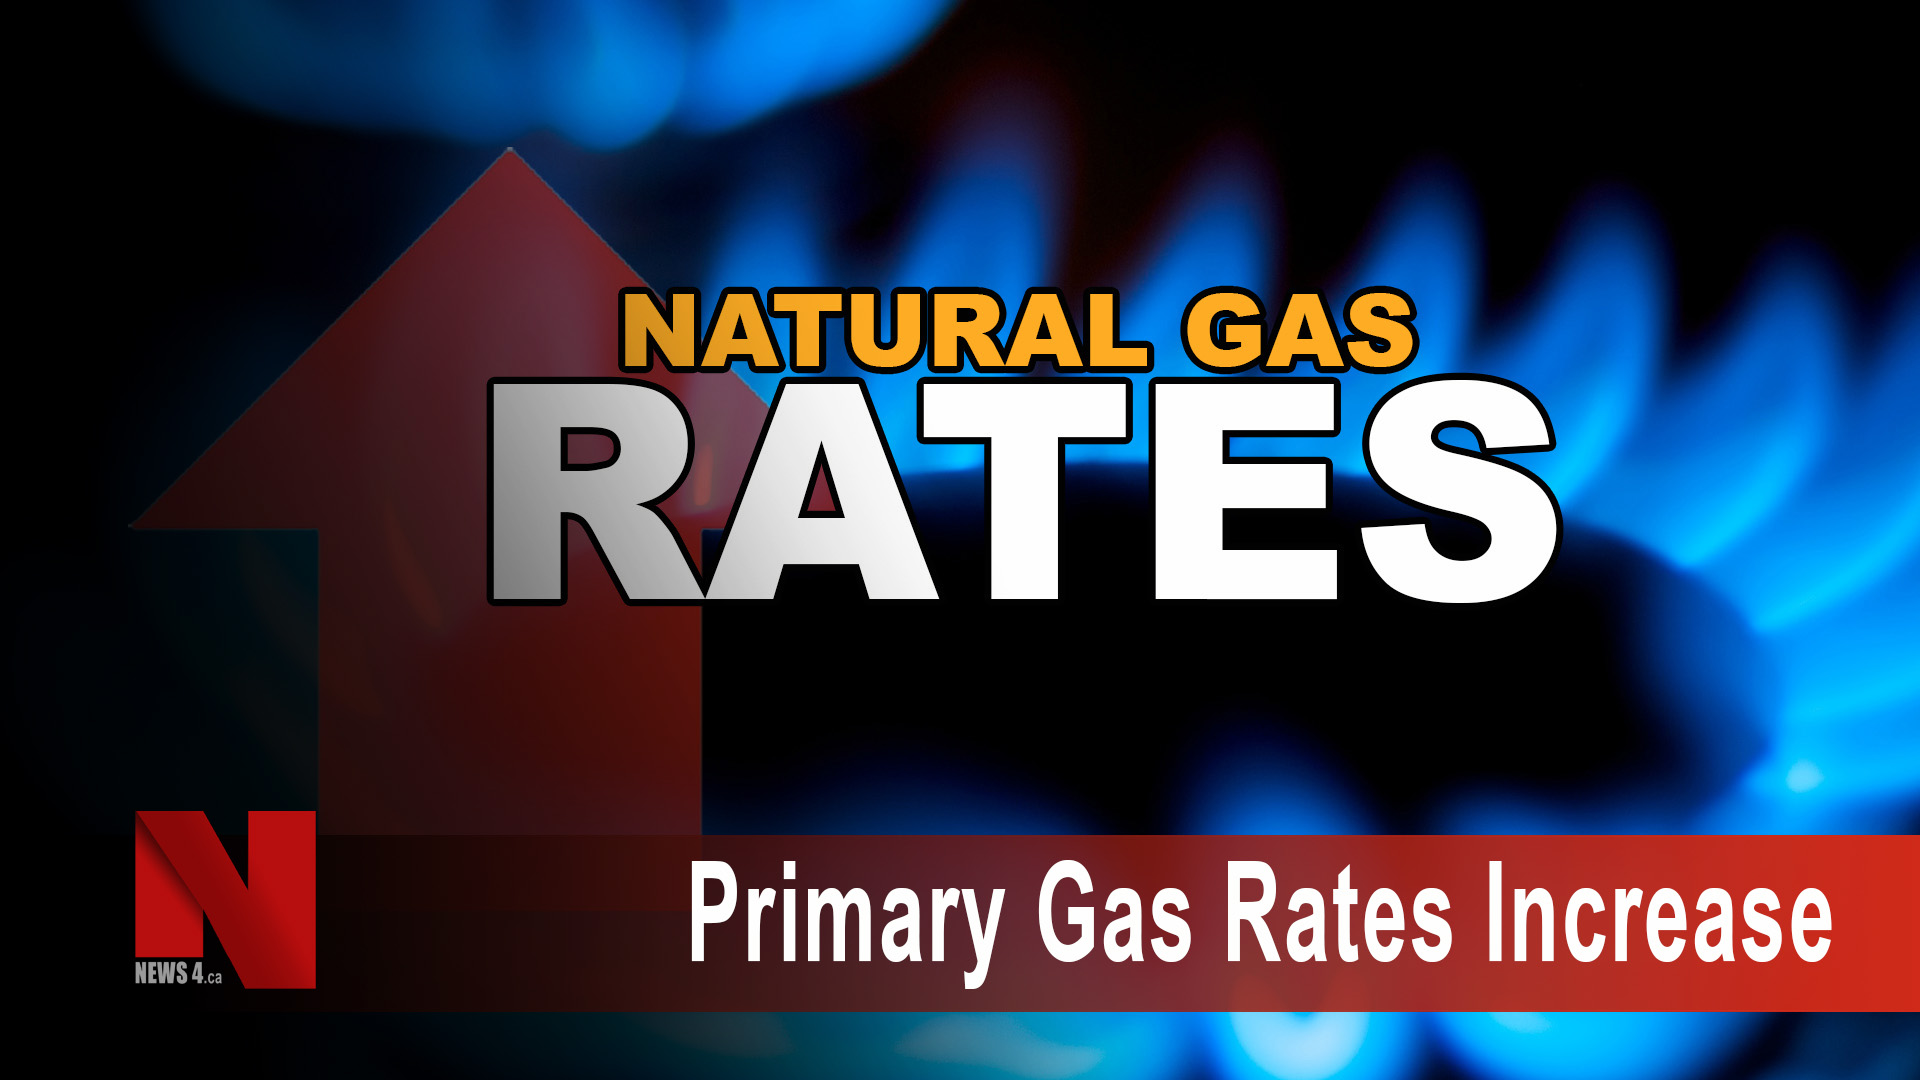 Primary gas rates increase